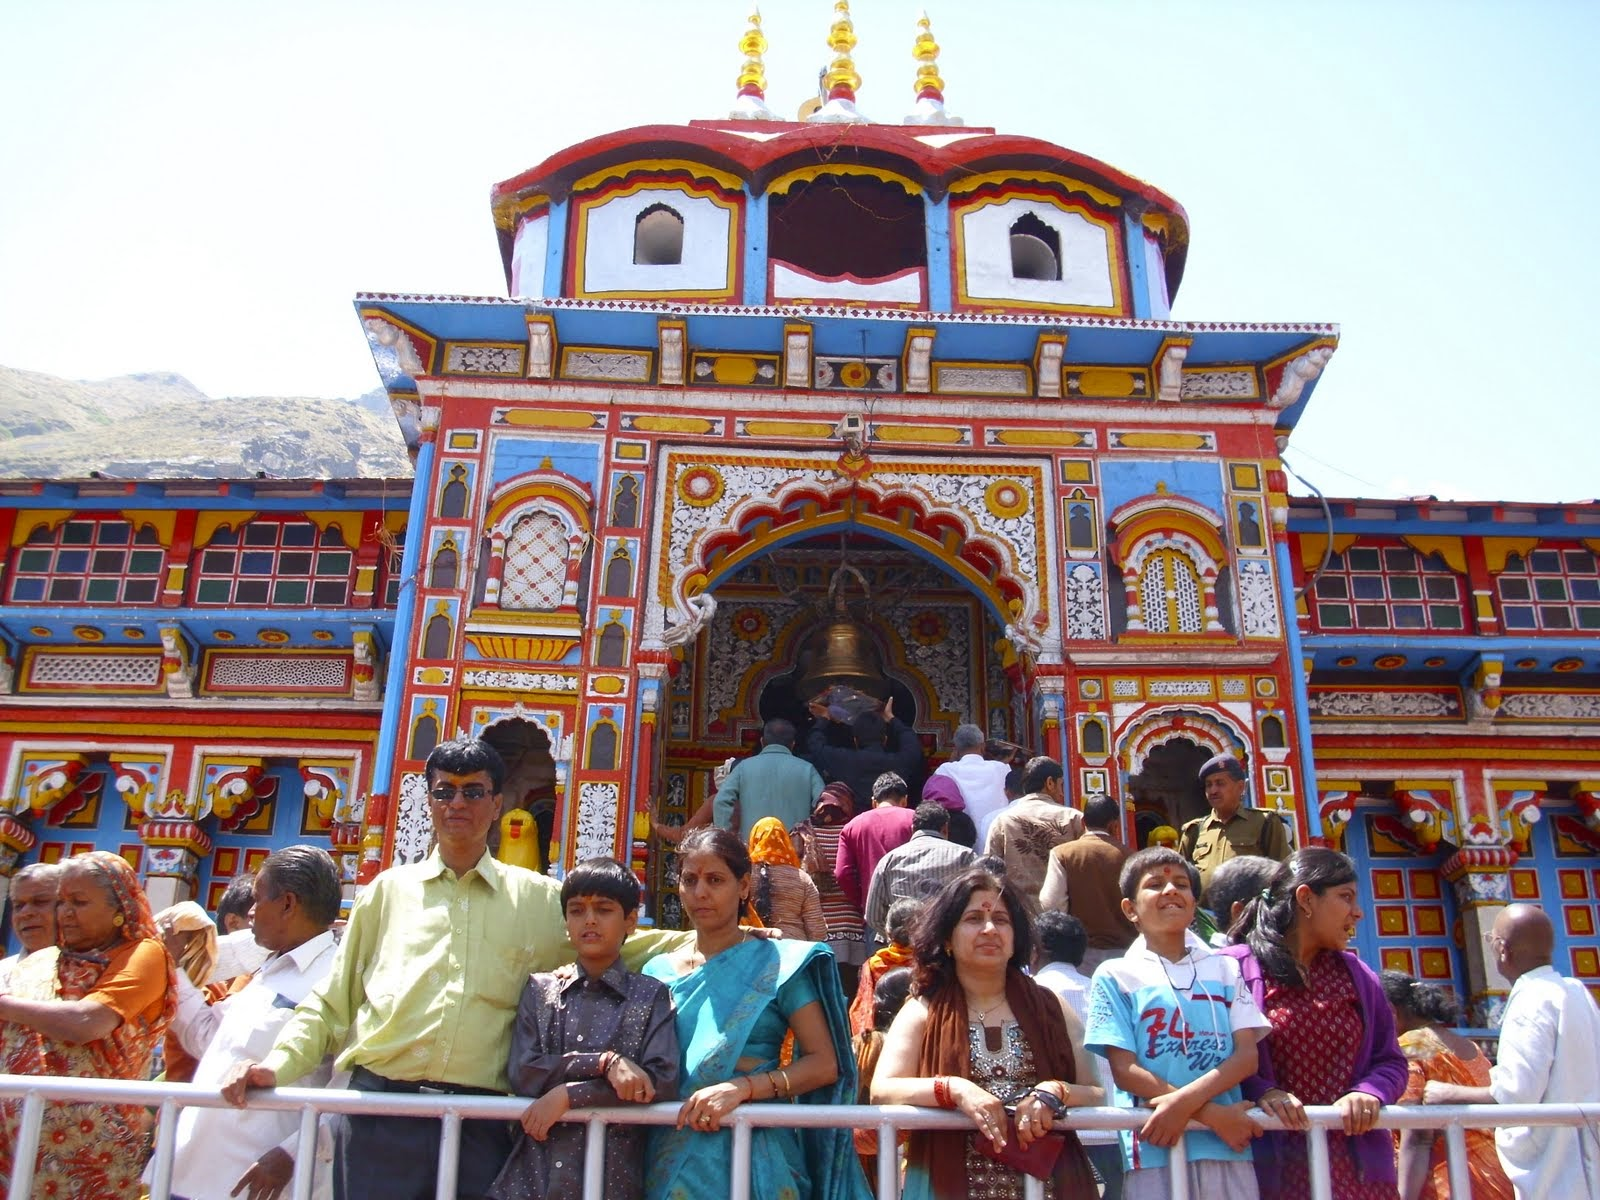 http://www.chardhampackages.com/badrinath-temple.html